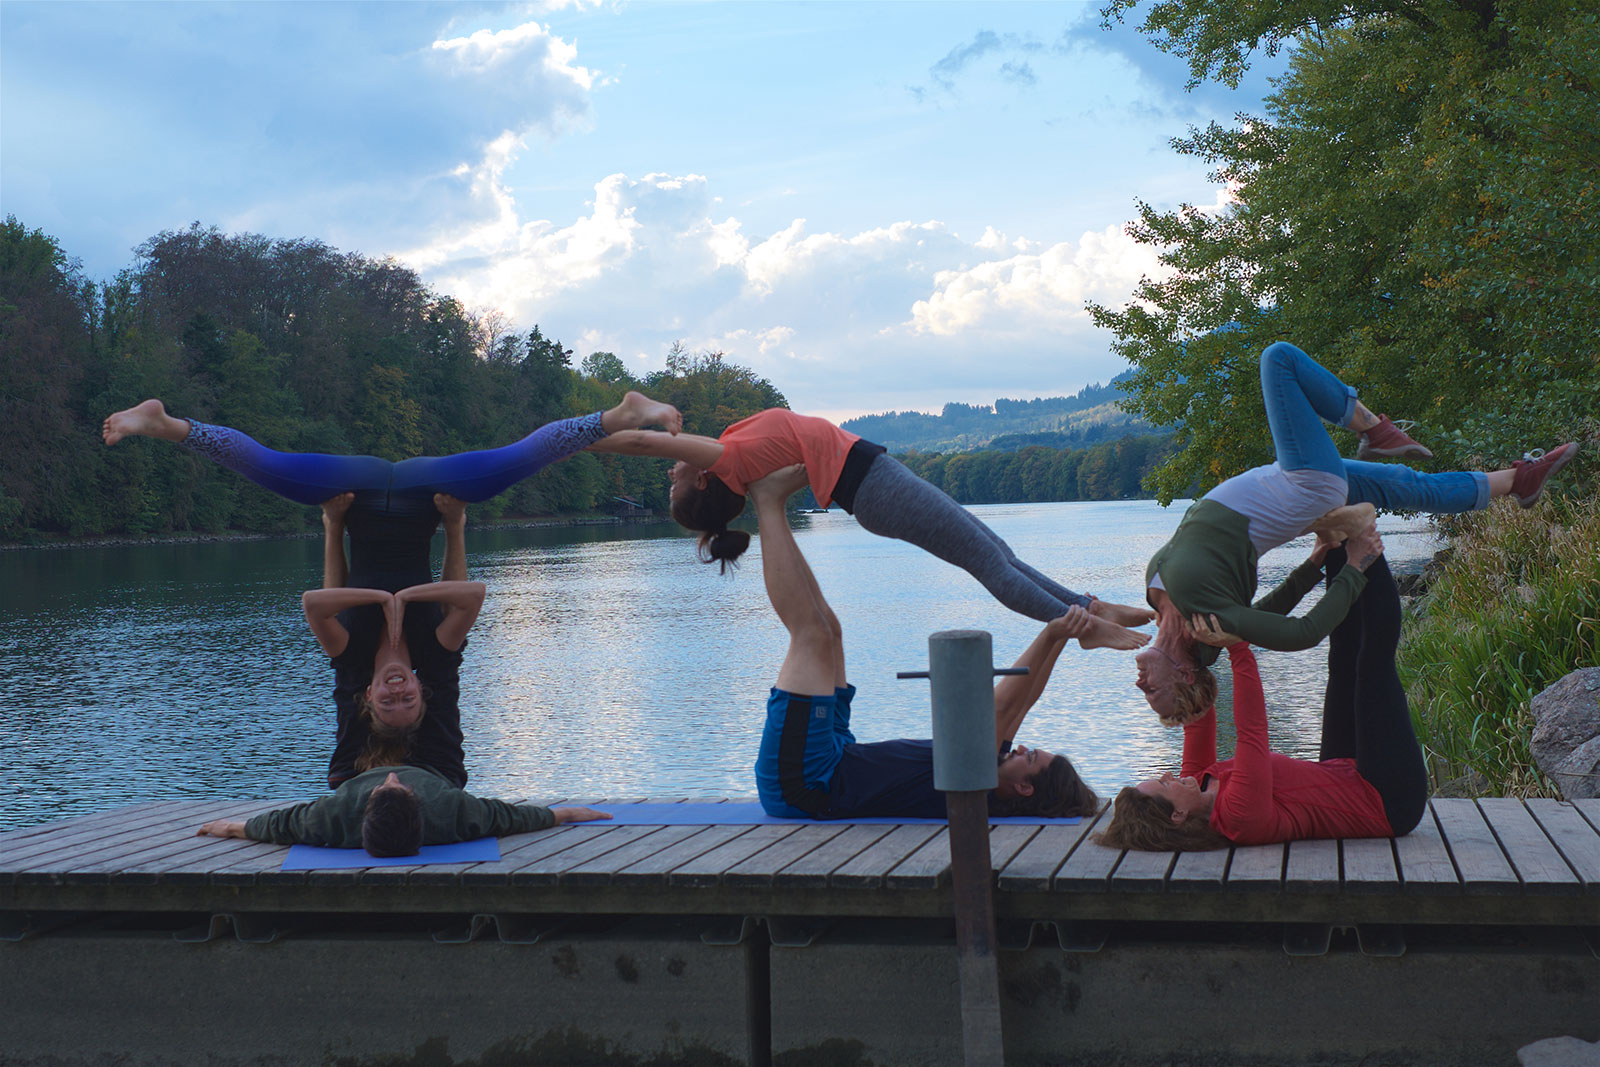 Acrobatic Yoga, Star Pose, Whale Pose, Backbend, inverted bow